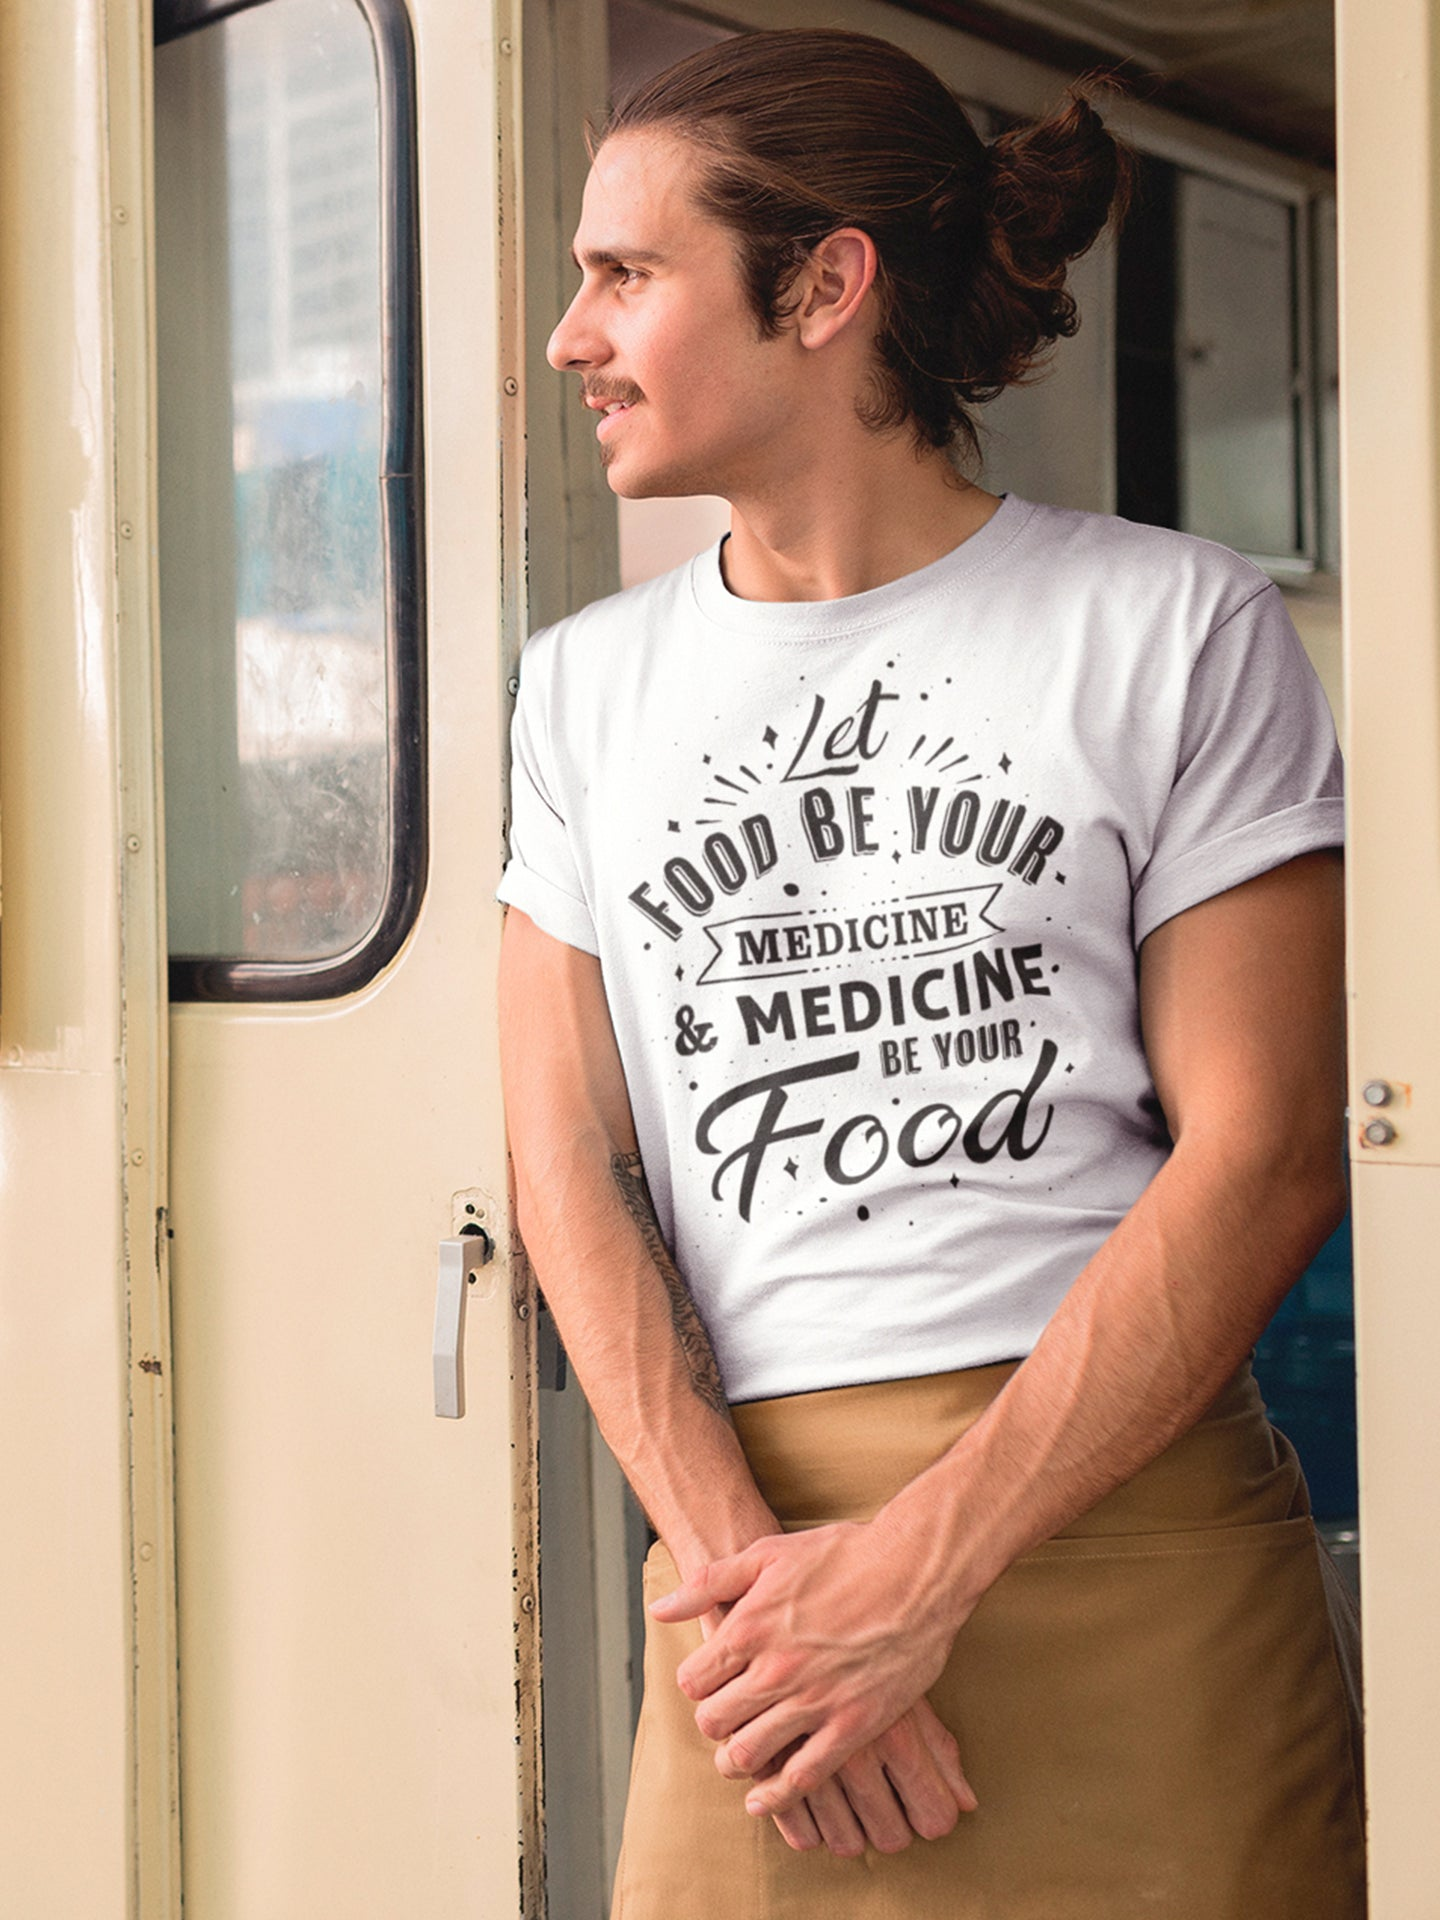 Let food be your medicine and medicine be your food t-shirt